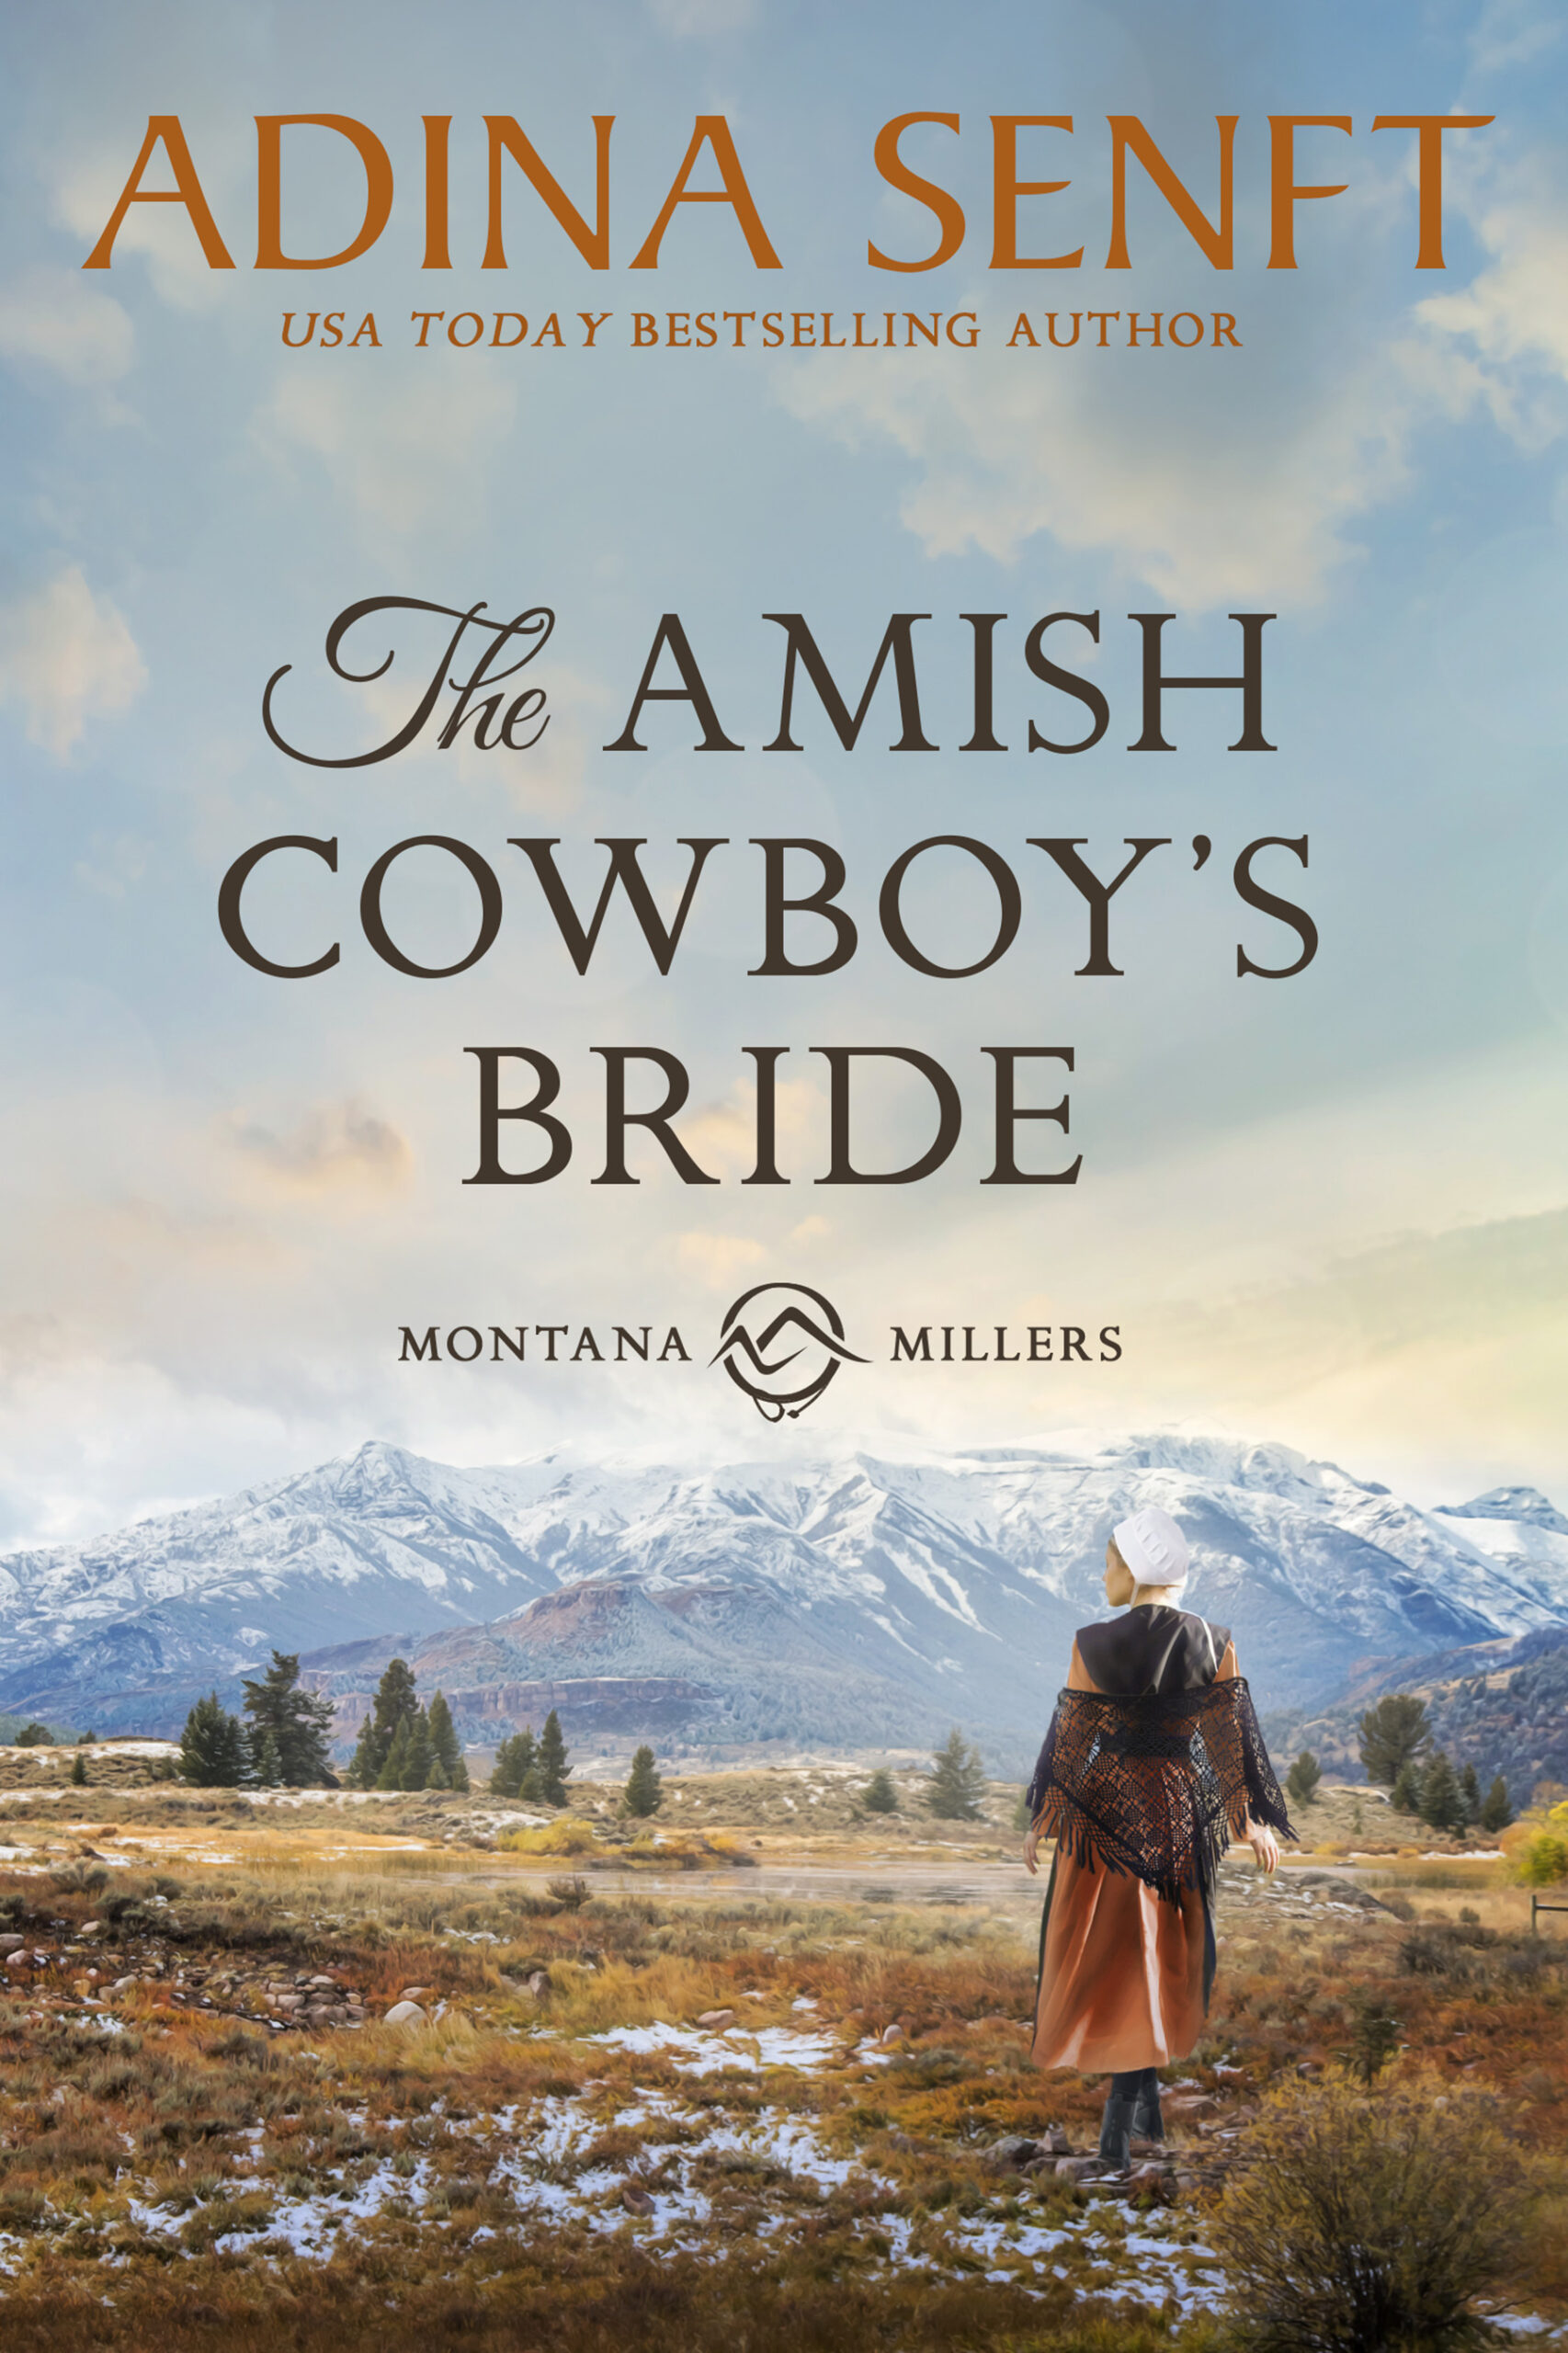 The Amish Cowboy's Bride by Adina Senft